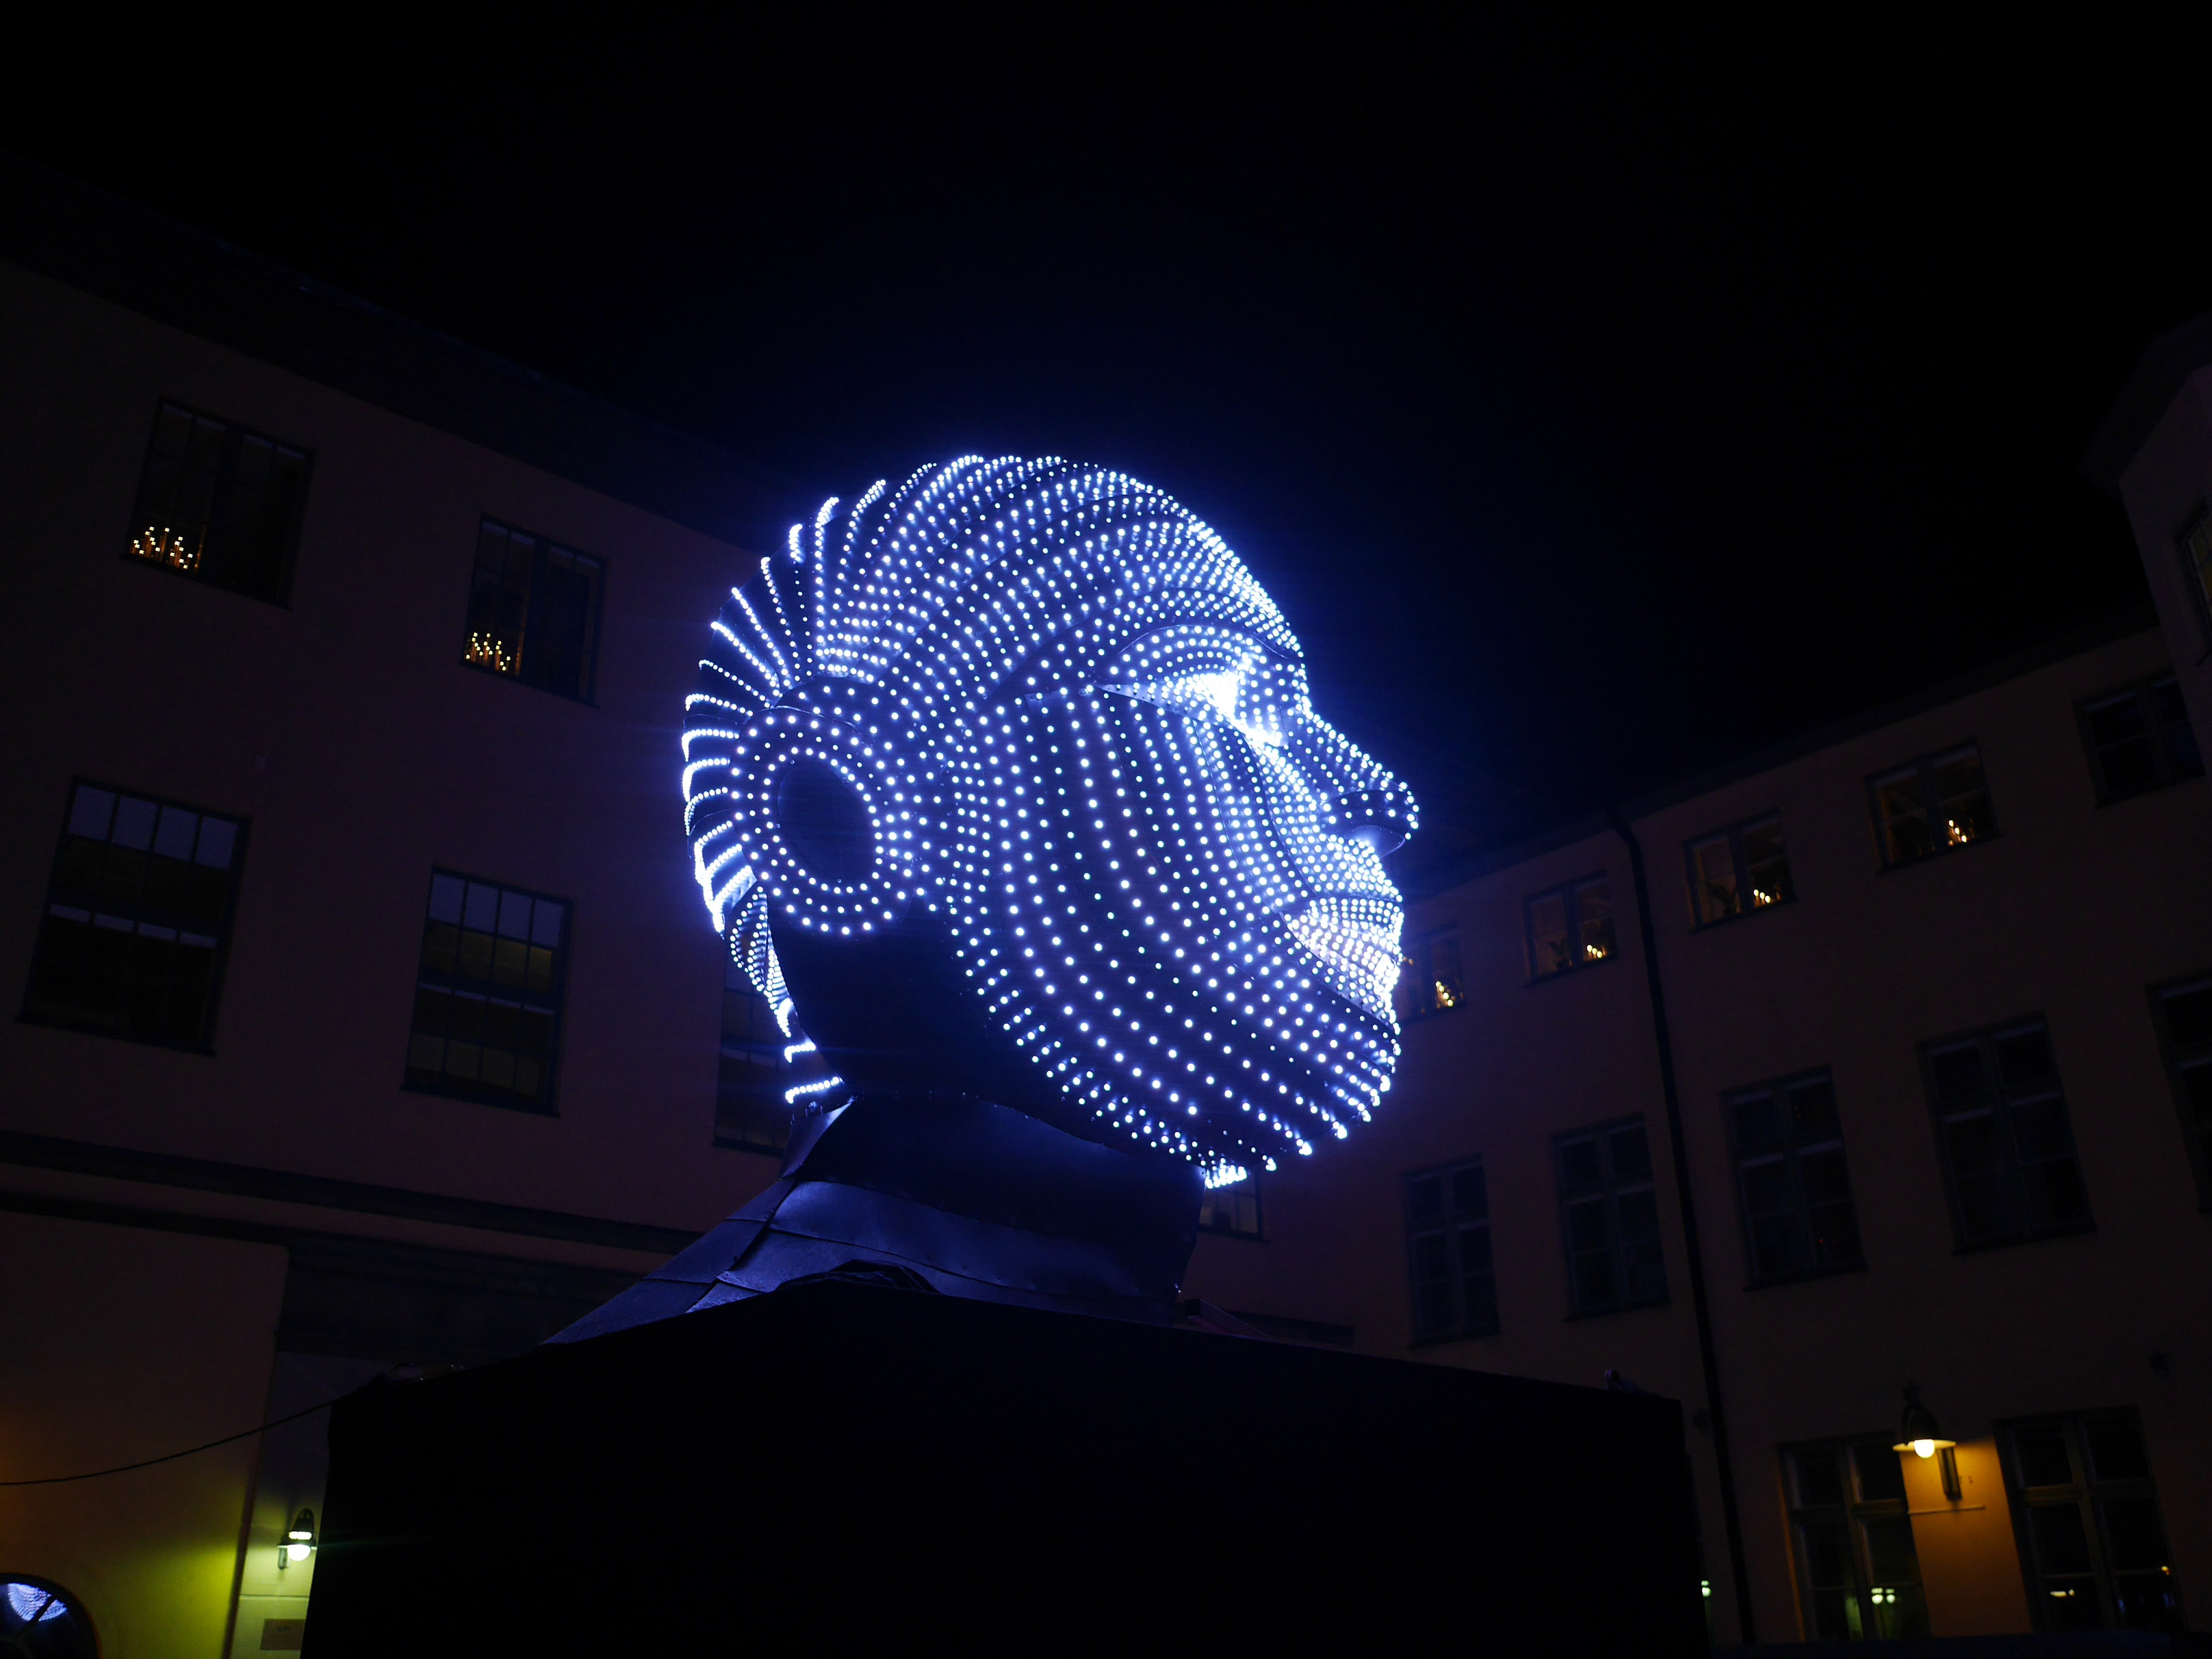 Norrköping Light Festival